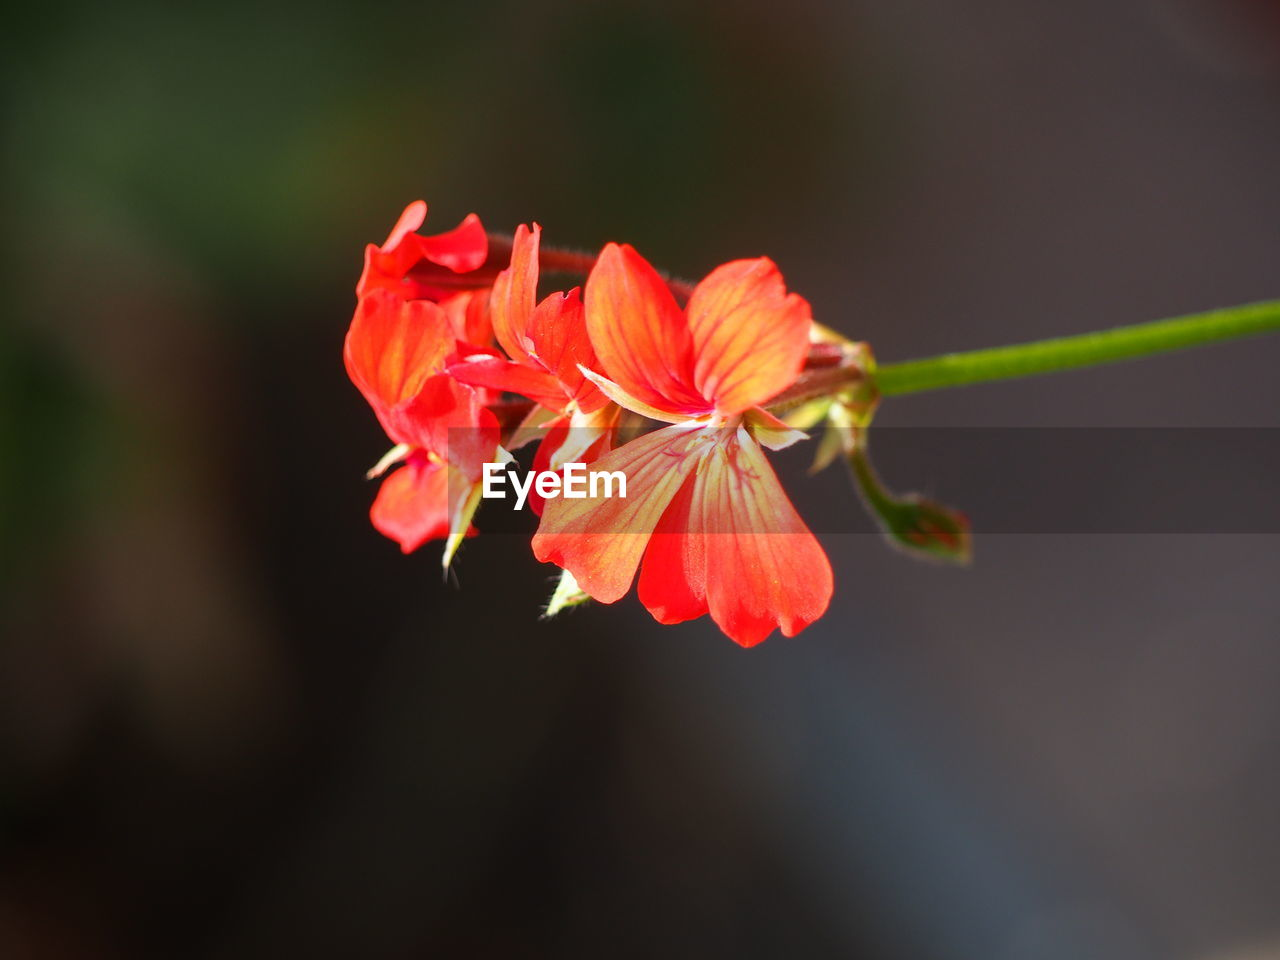 flower, growth, petal, nature, fragility, beauty in nature, plant, blooming, red, flower head, freshness, close-up, no people, outdoors, day